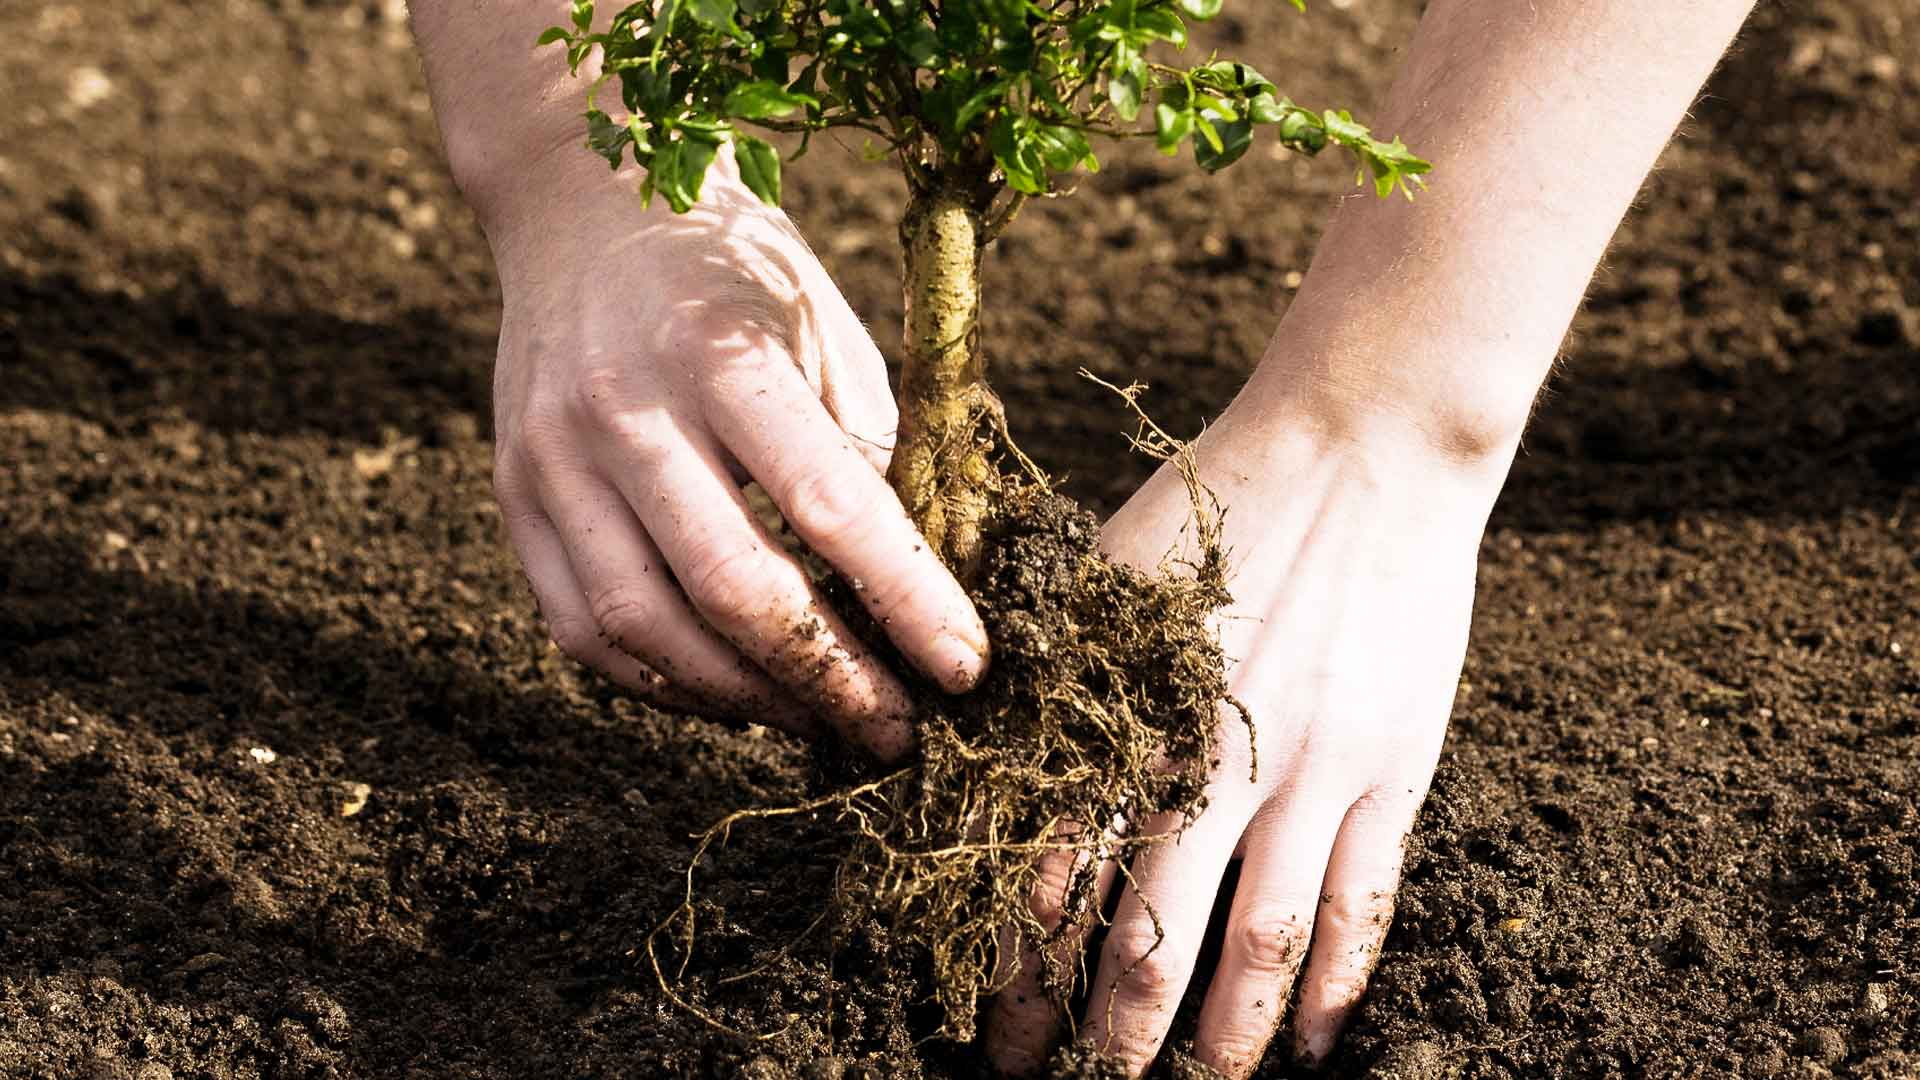 Proper tree planting tips for Arbor Day | Sanpete County